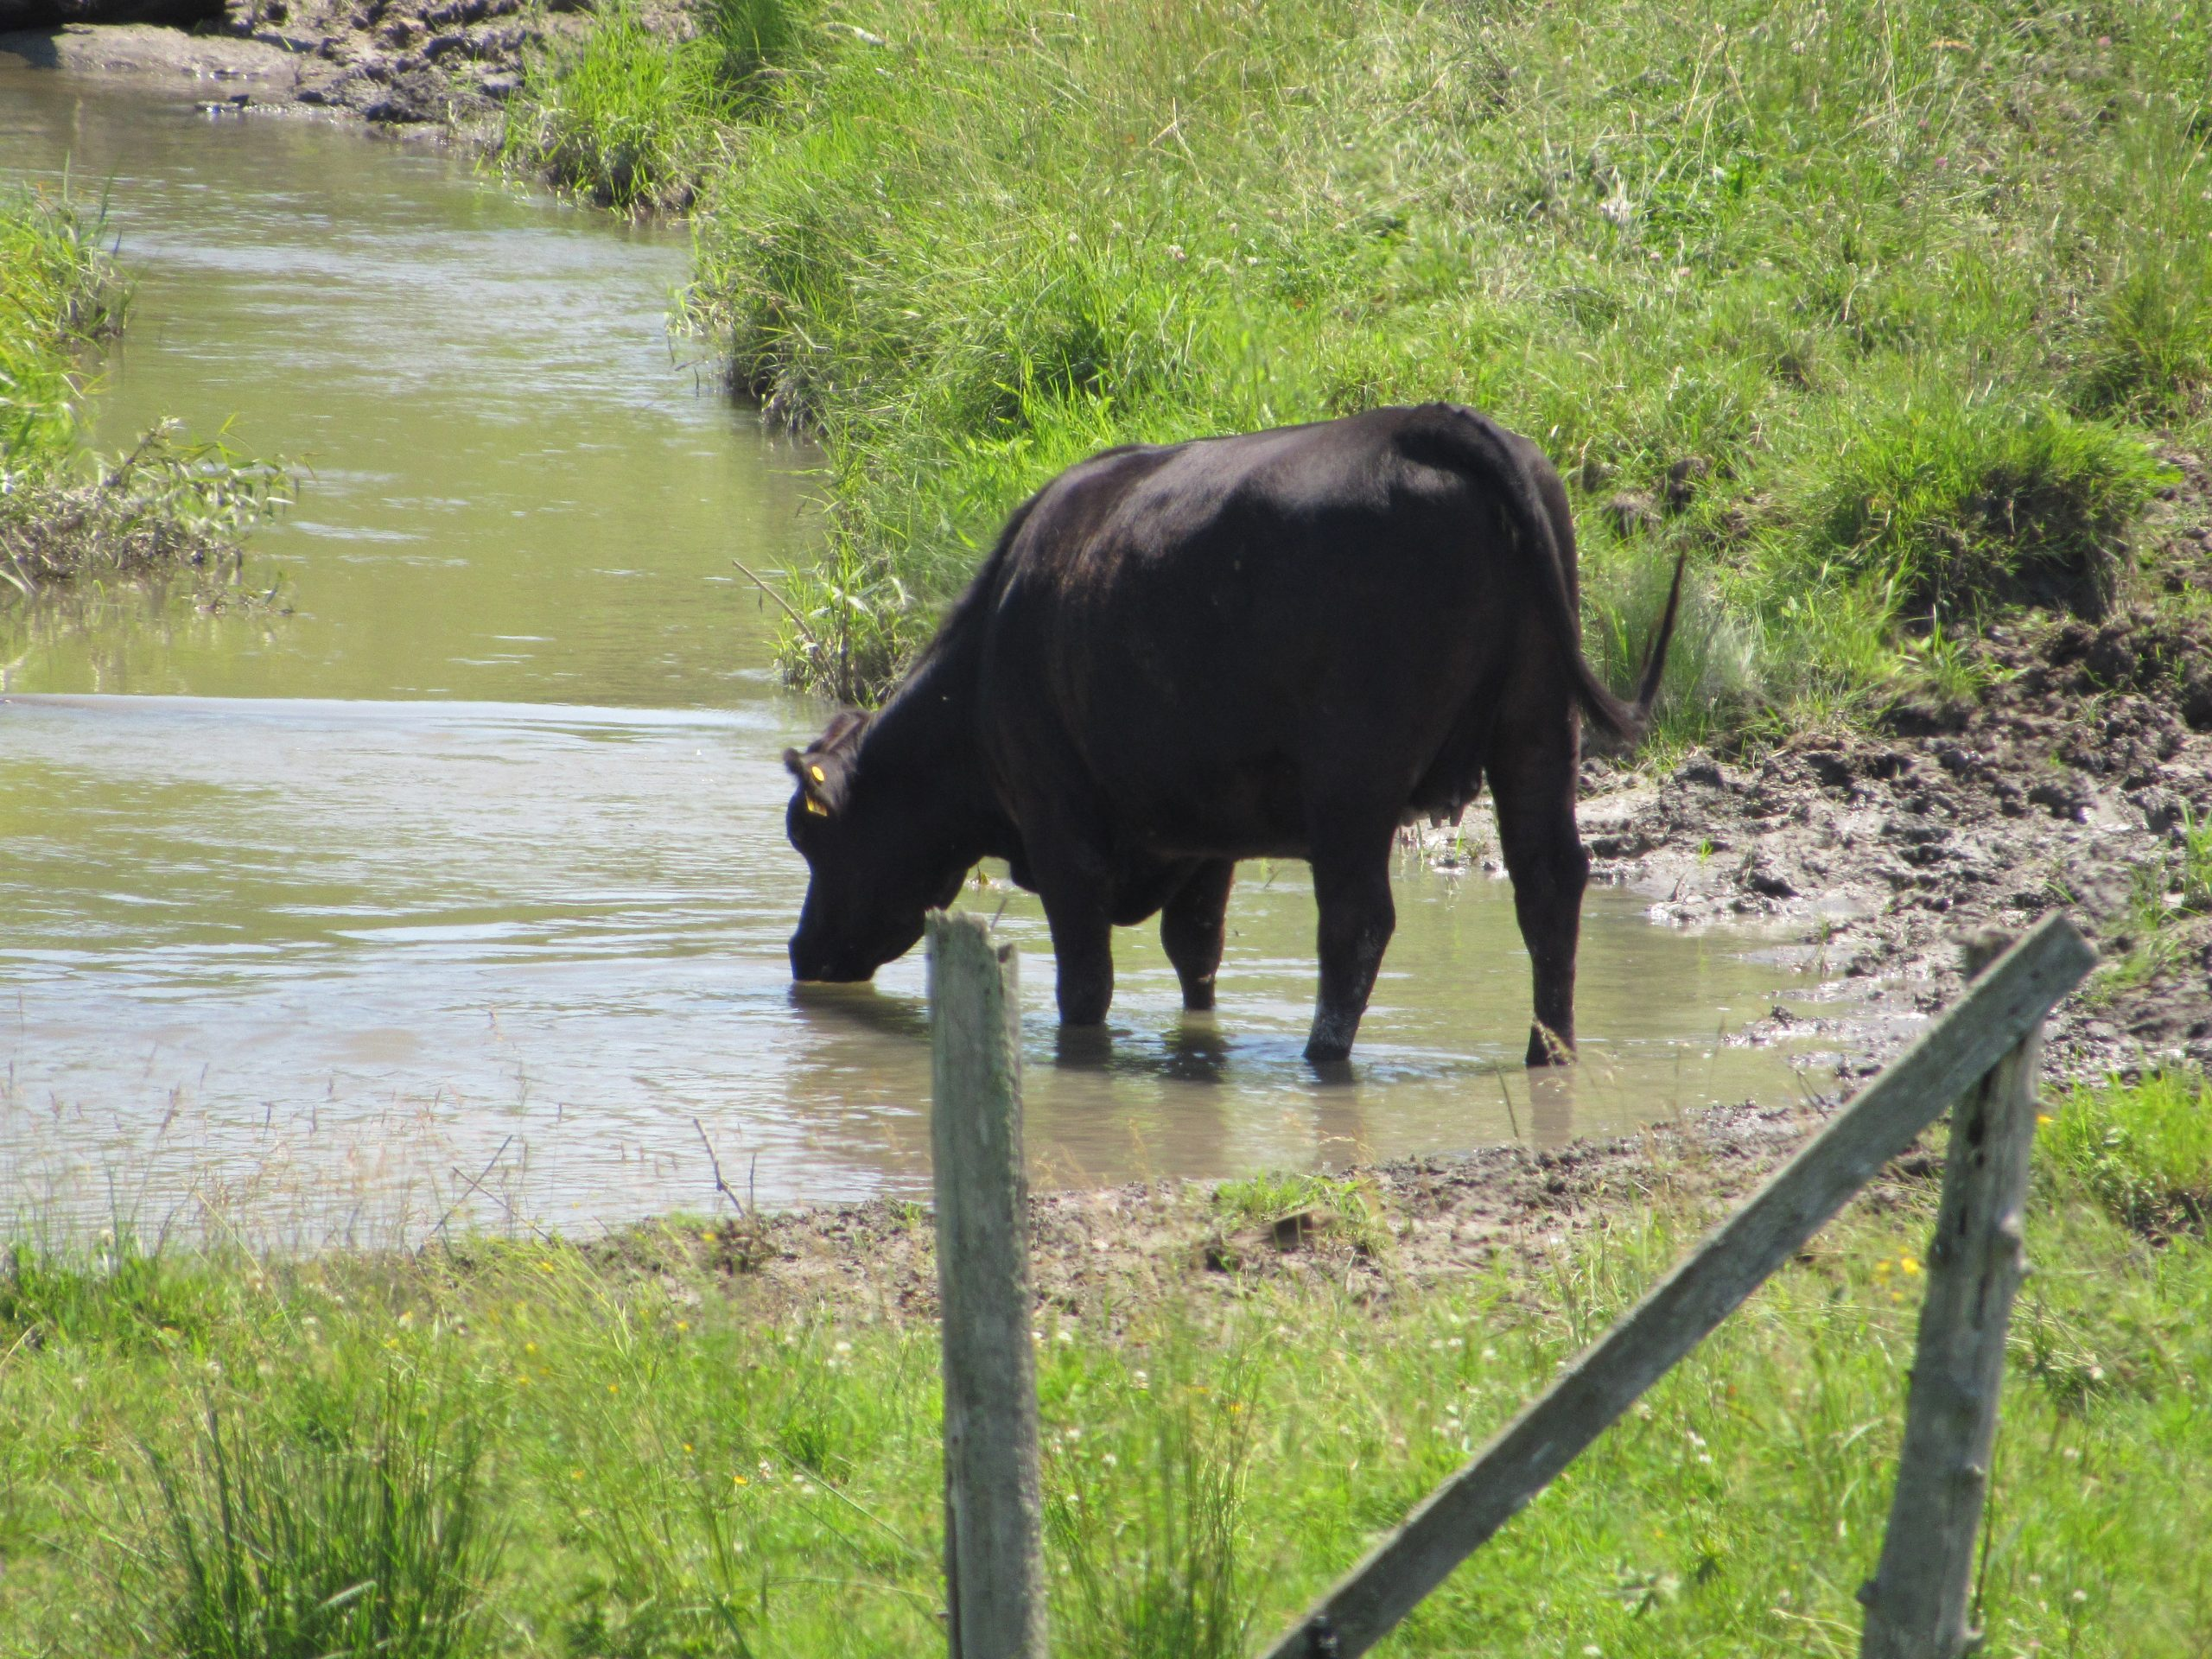 Cattle drinking from stream